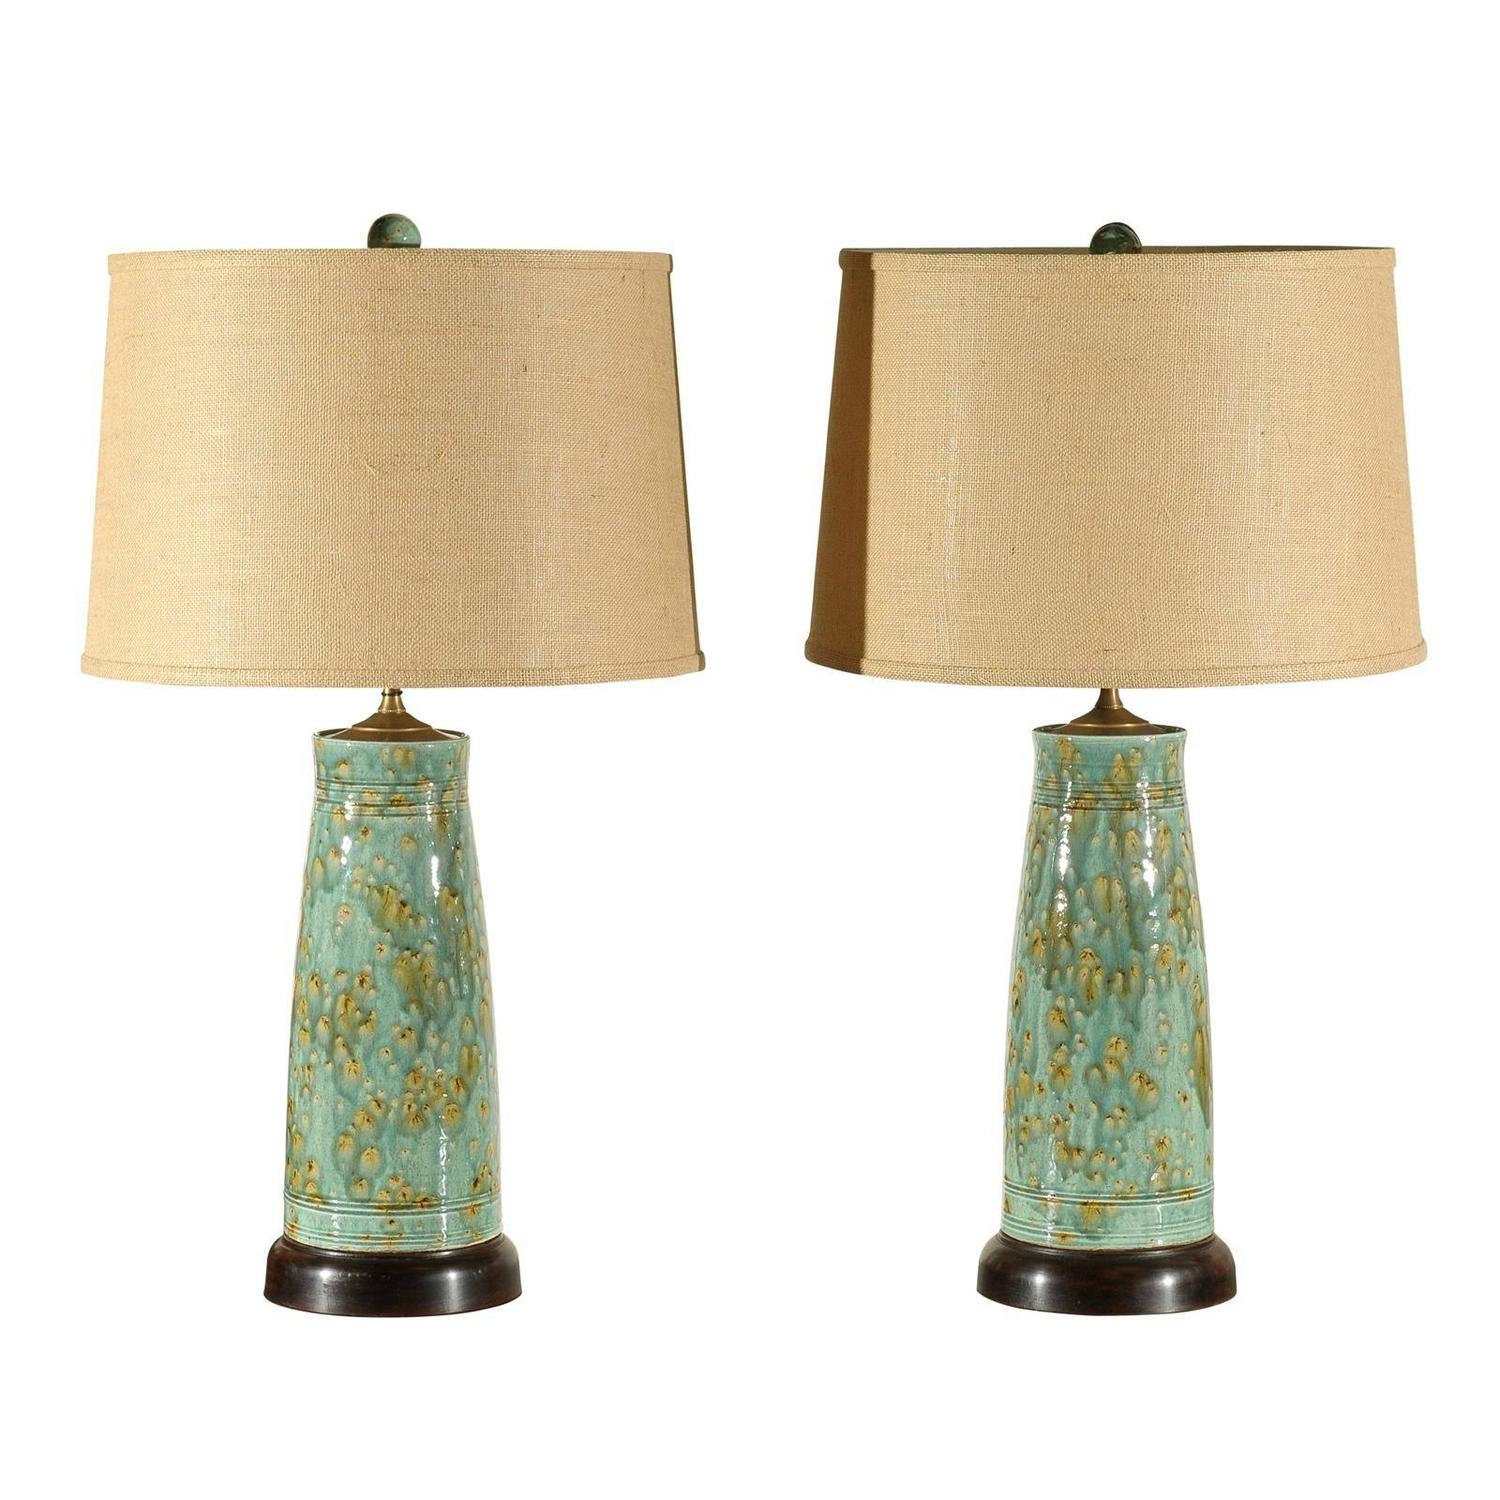 Pair Of Charlie West Table Lamps At 1stdibs